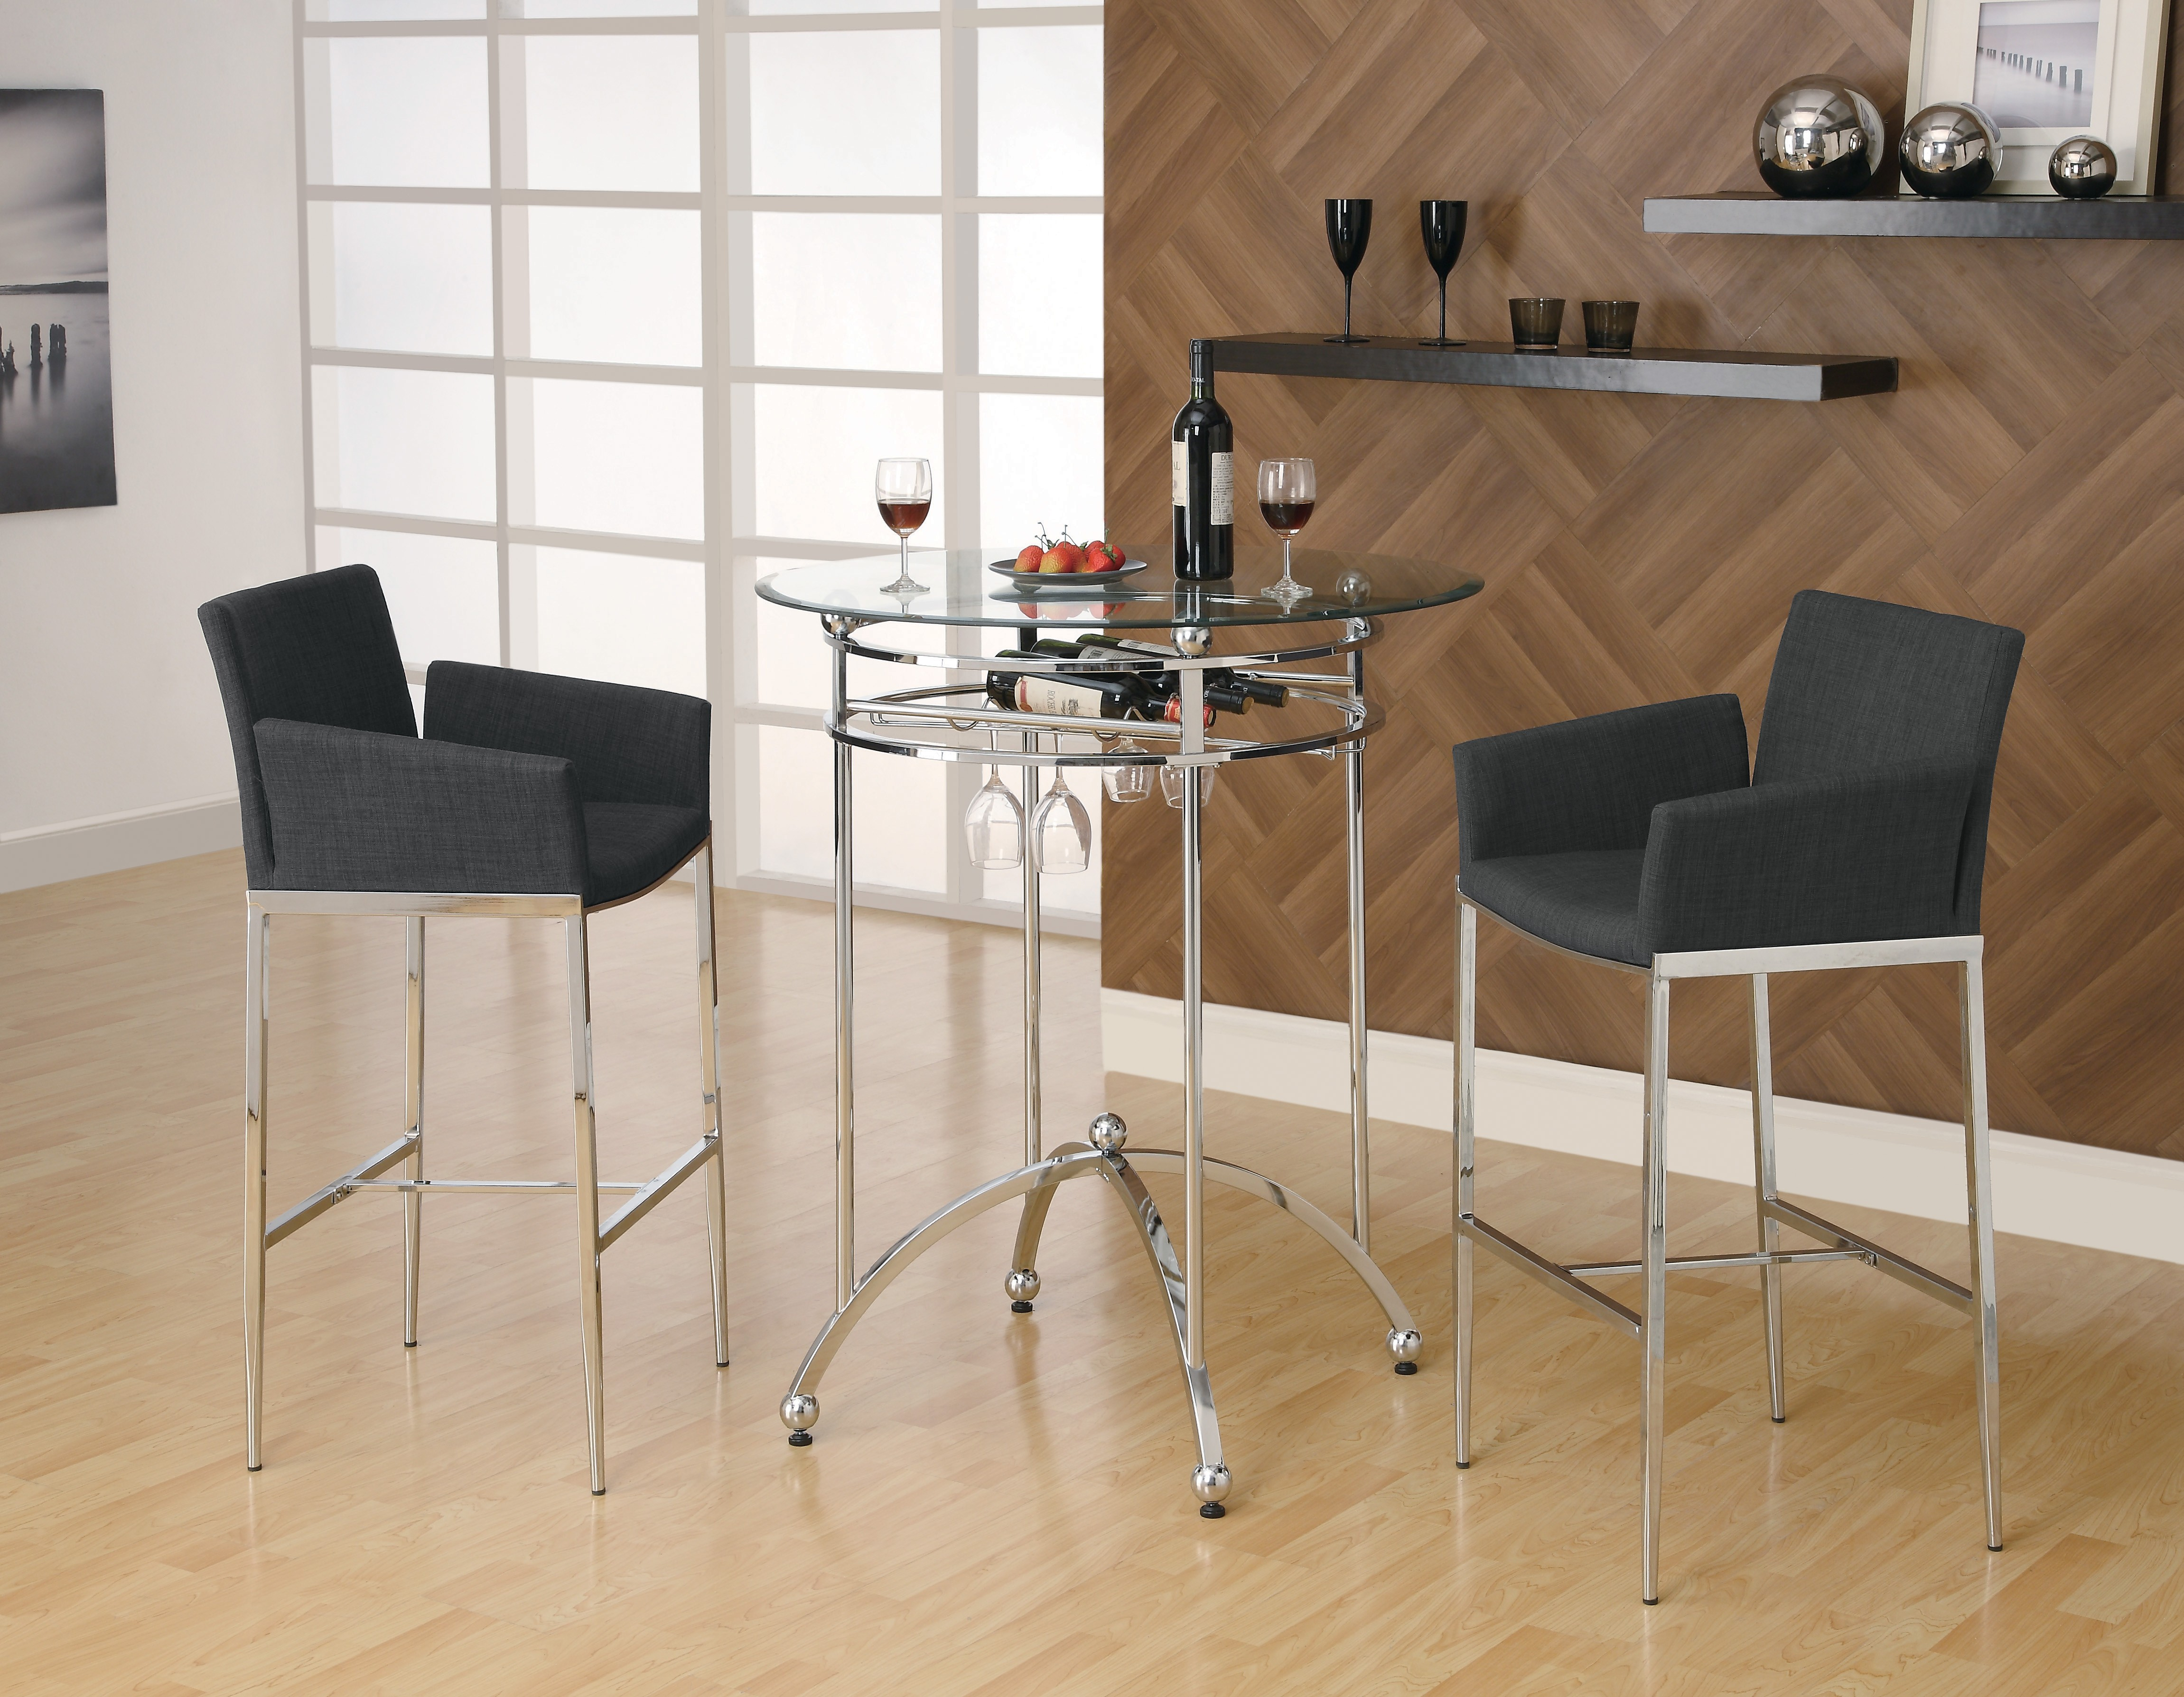 Destany Modern Glass Bar Table Collection Las Vegas Furniture Store Modern Home Furniture